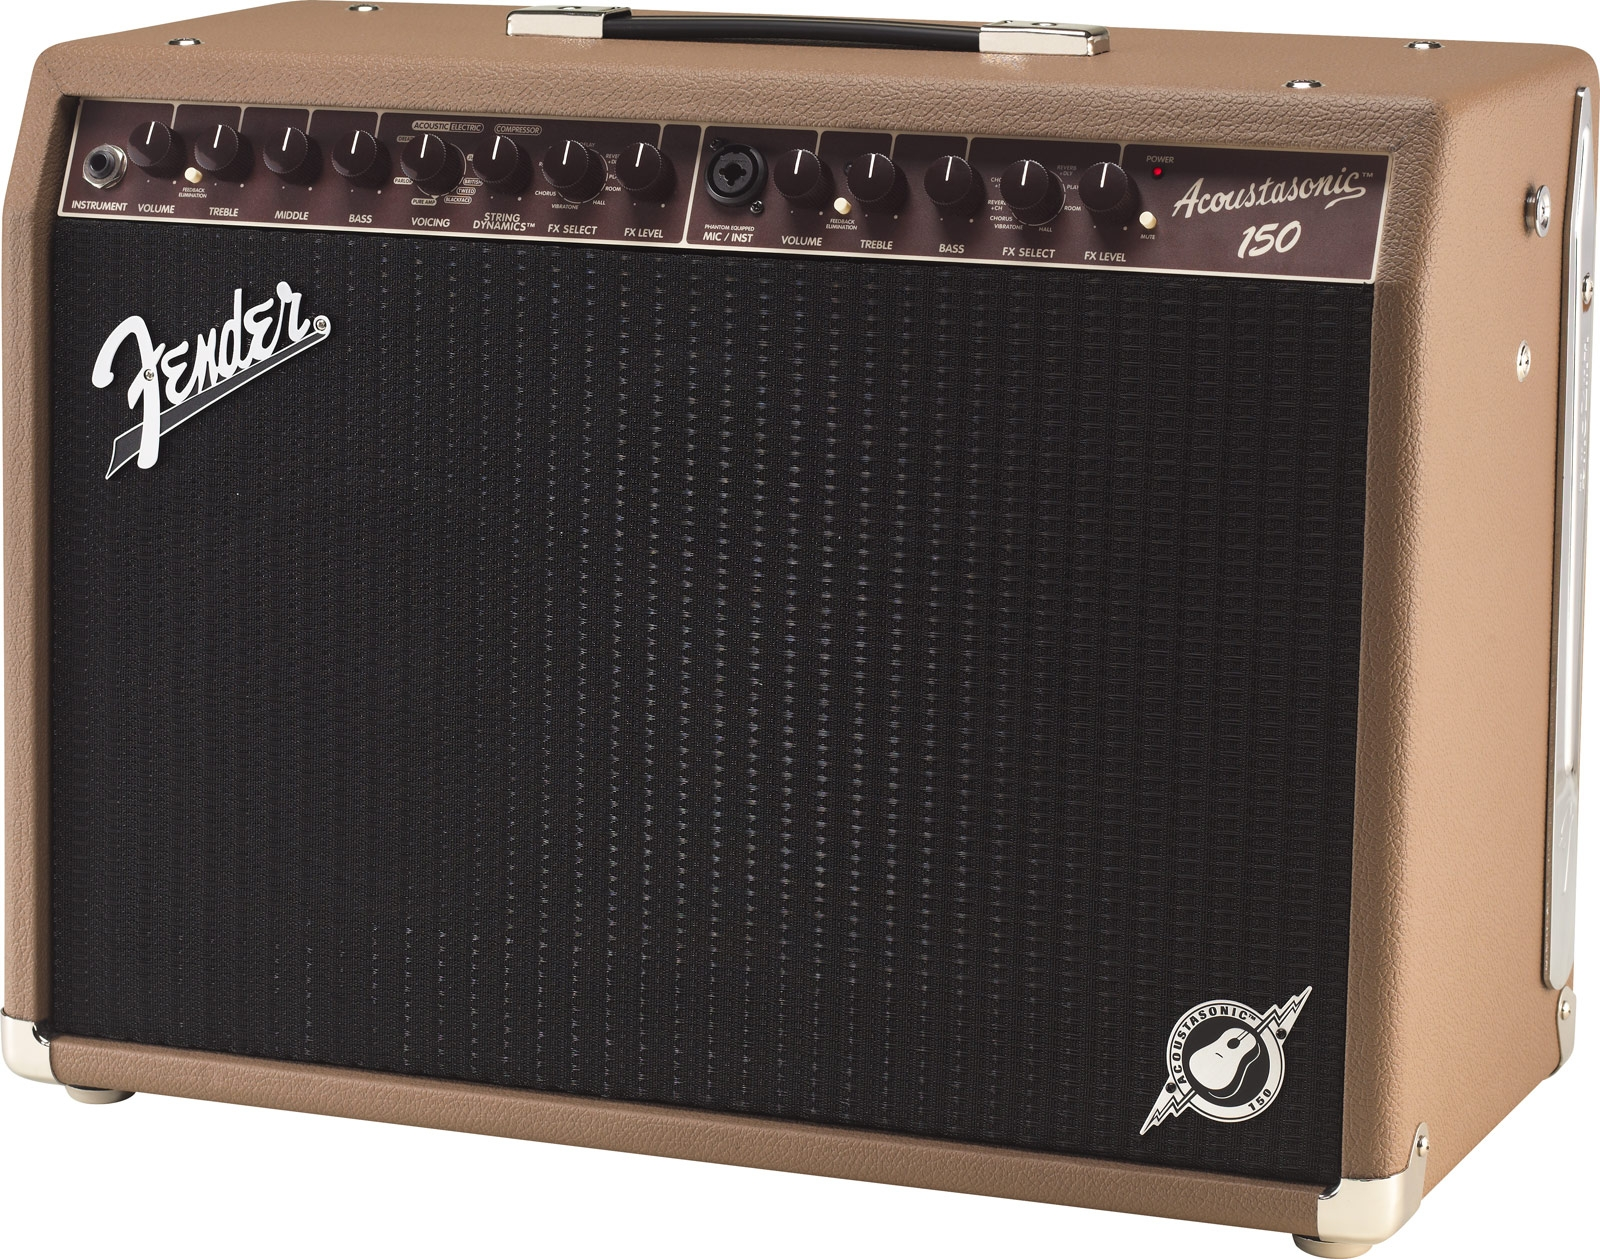 For Acoustic Players That Dabble In Electric Reviews Fender